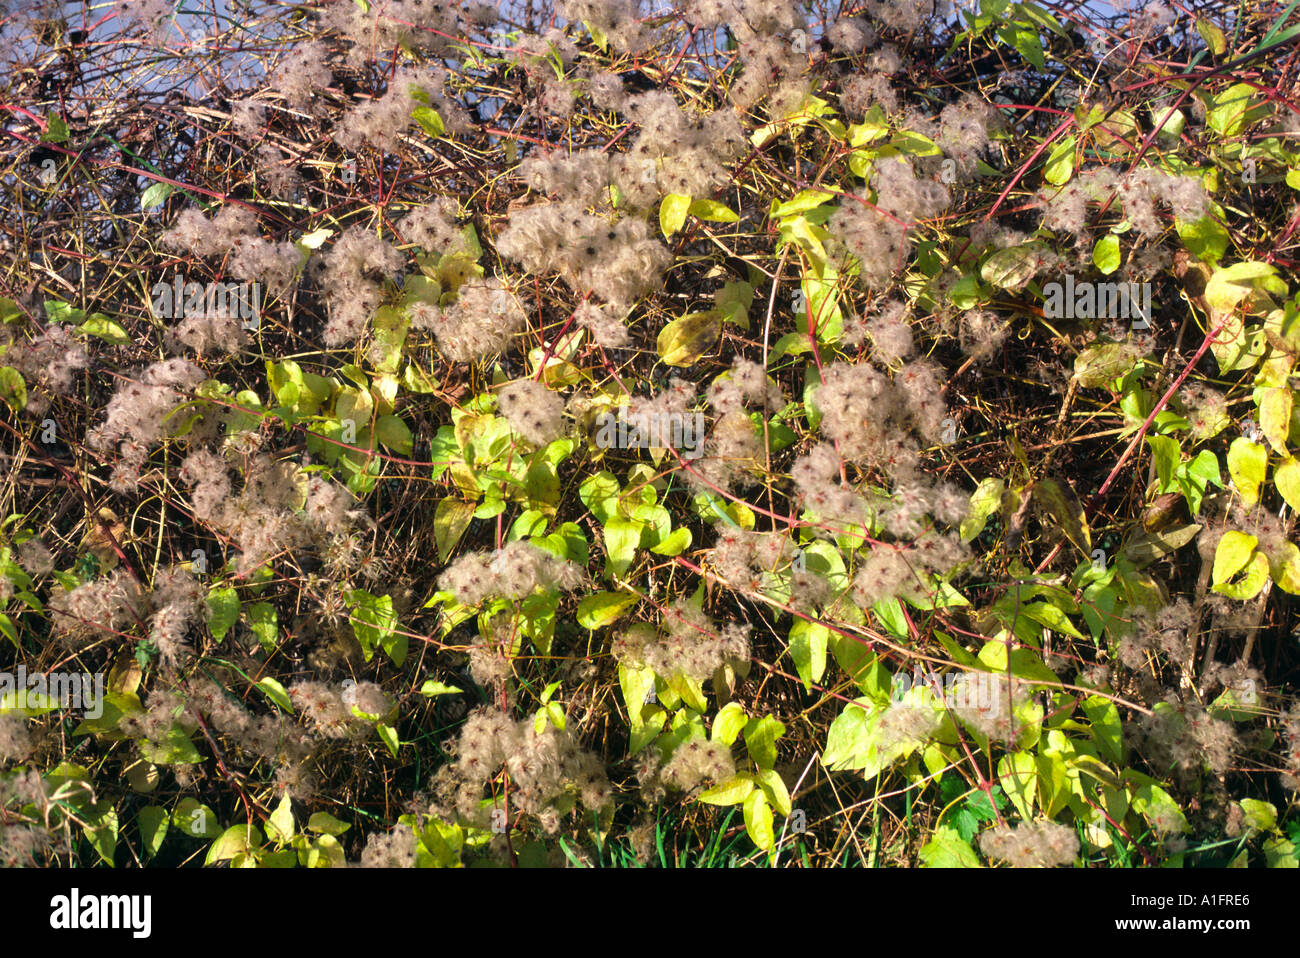 Old man s beard growing in hedgerow - Stock Image